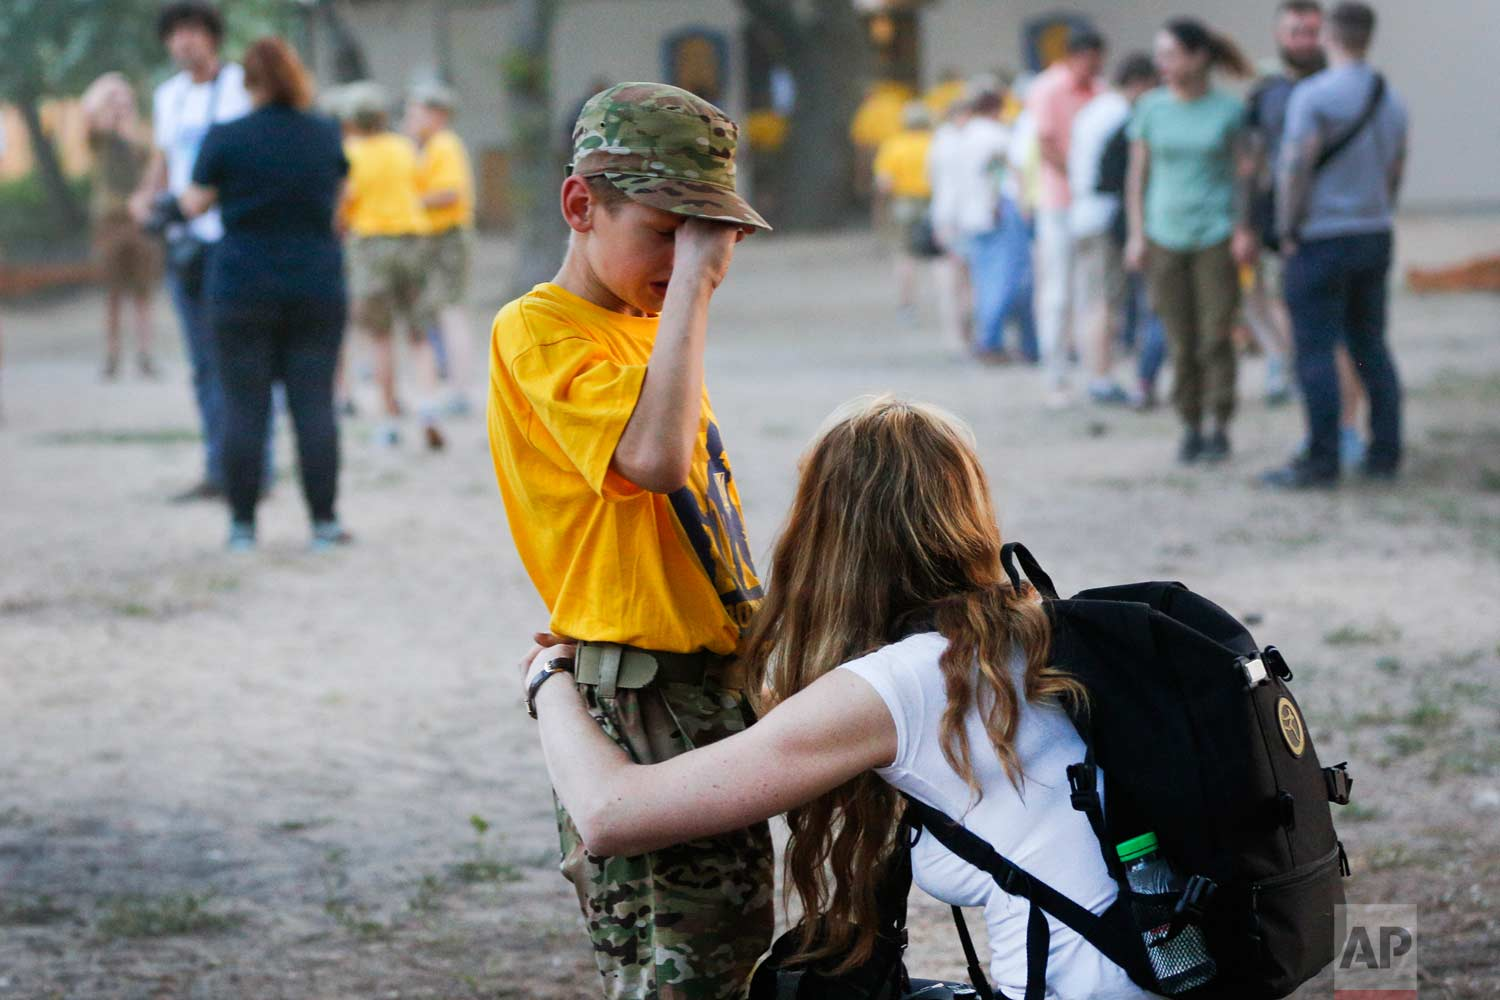 In this photo taken on Saturday, July 8, 2017, a visiting mother consoles her child at a paramilitary camp for children outside Kiev, Ukraine. (AP Photo/Efrem Lukatsky)